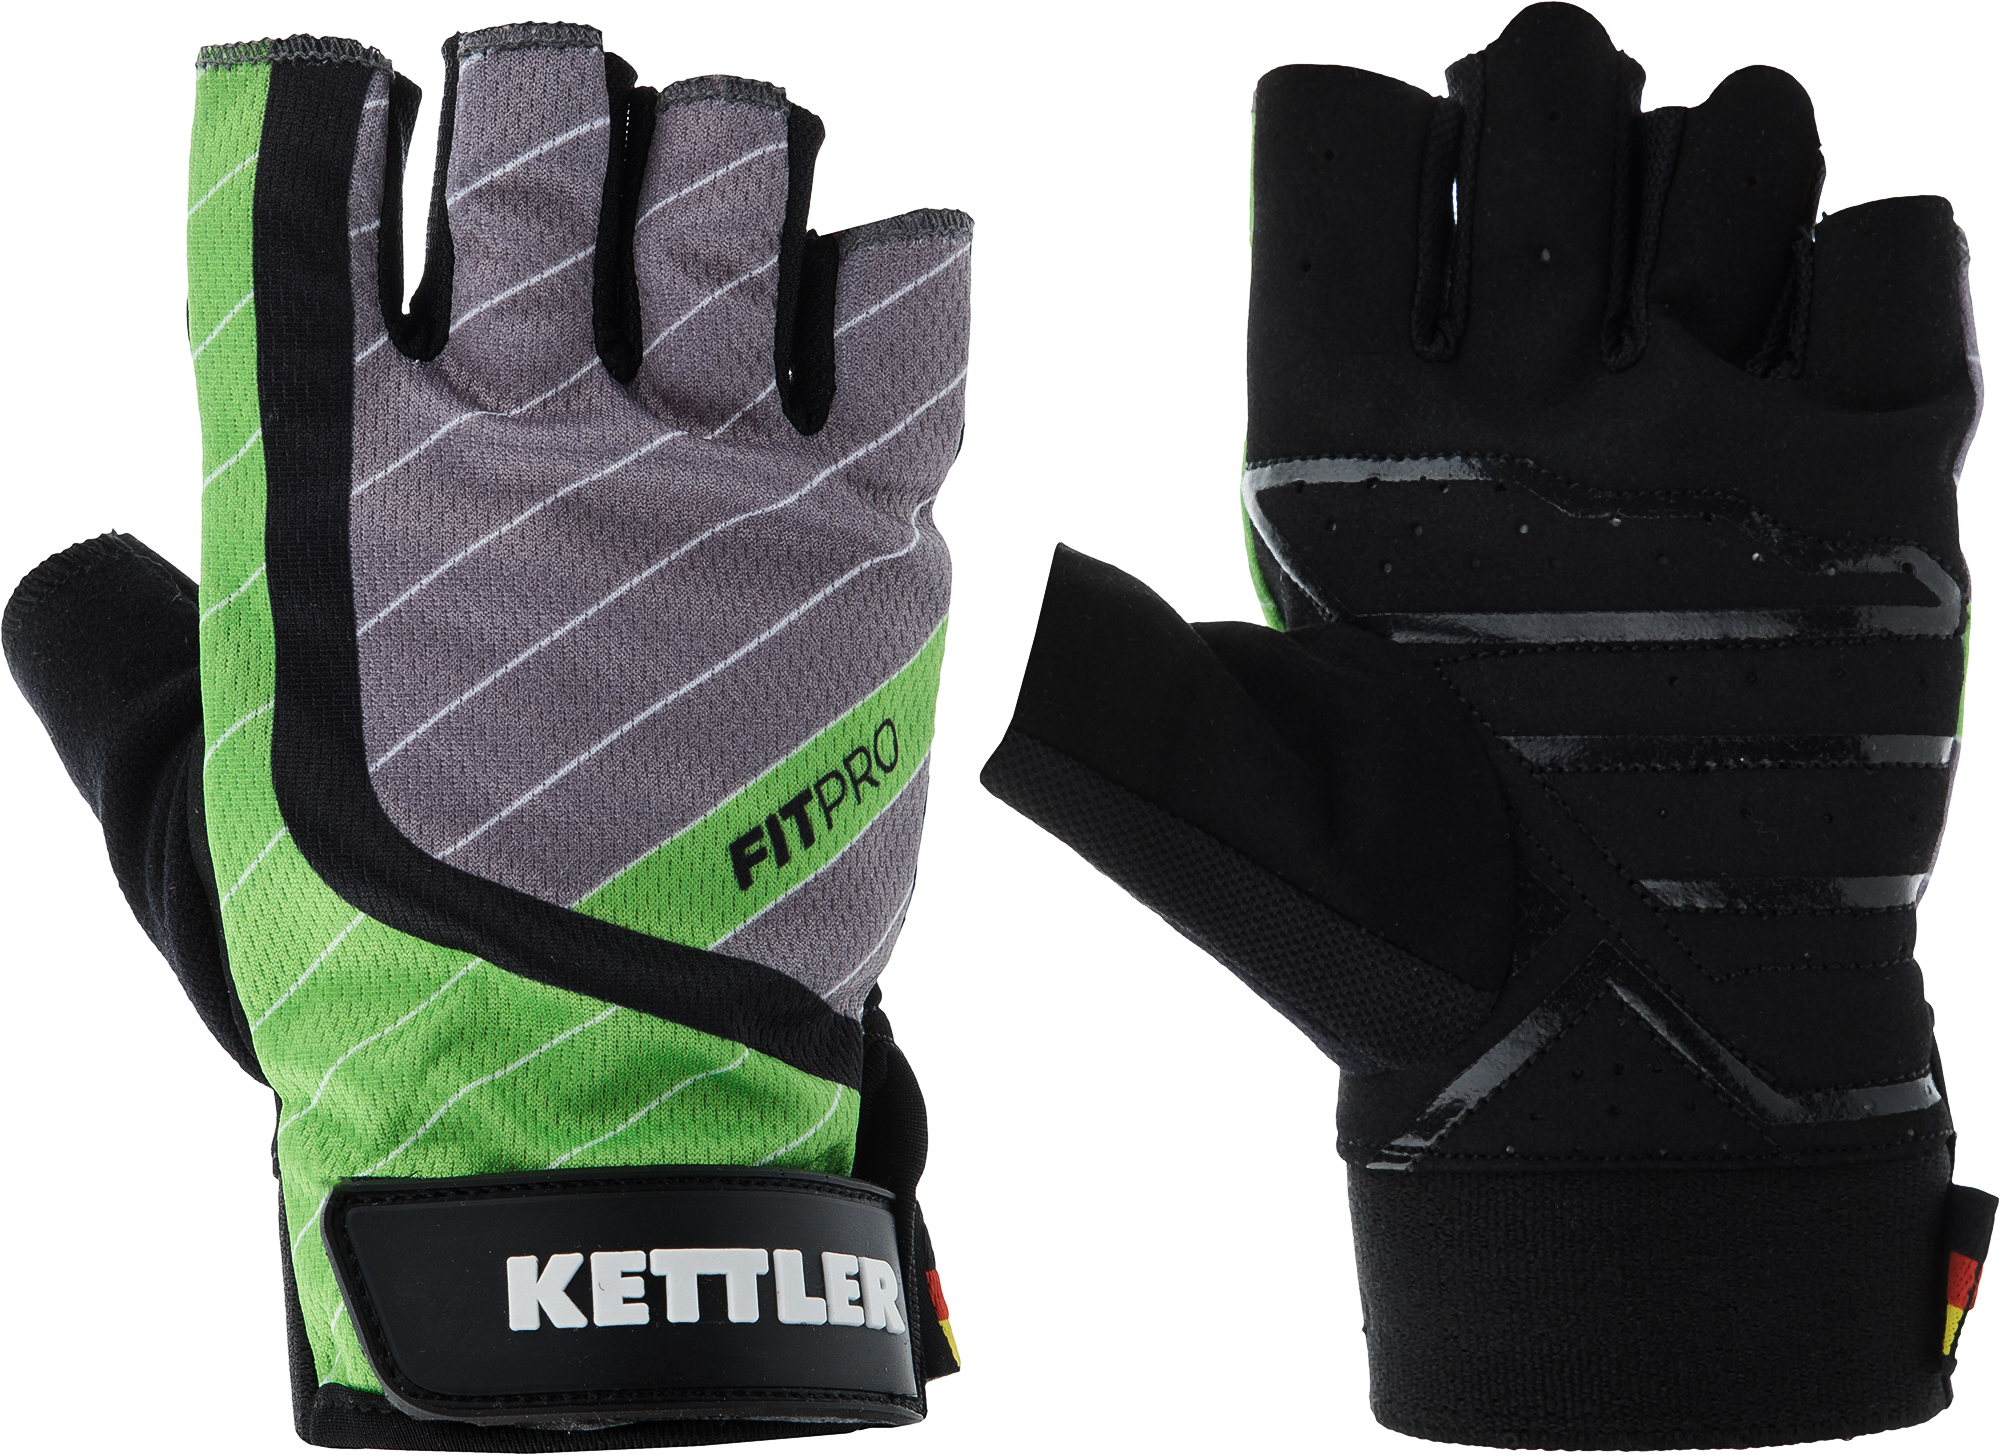 Kettler Перчатки для фитнеса Kettler Fitness Gloves AK-310M-G2, размер 9.5